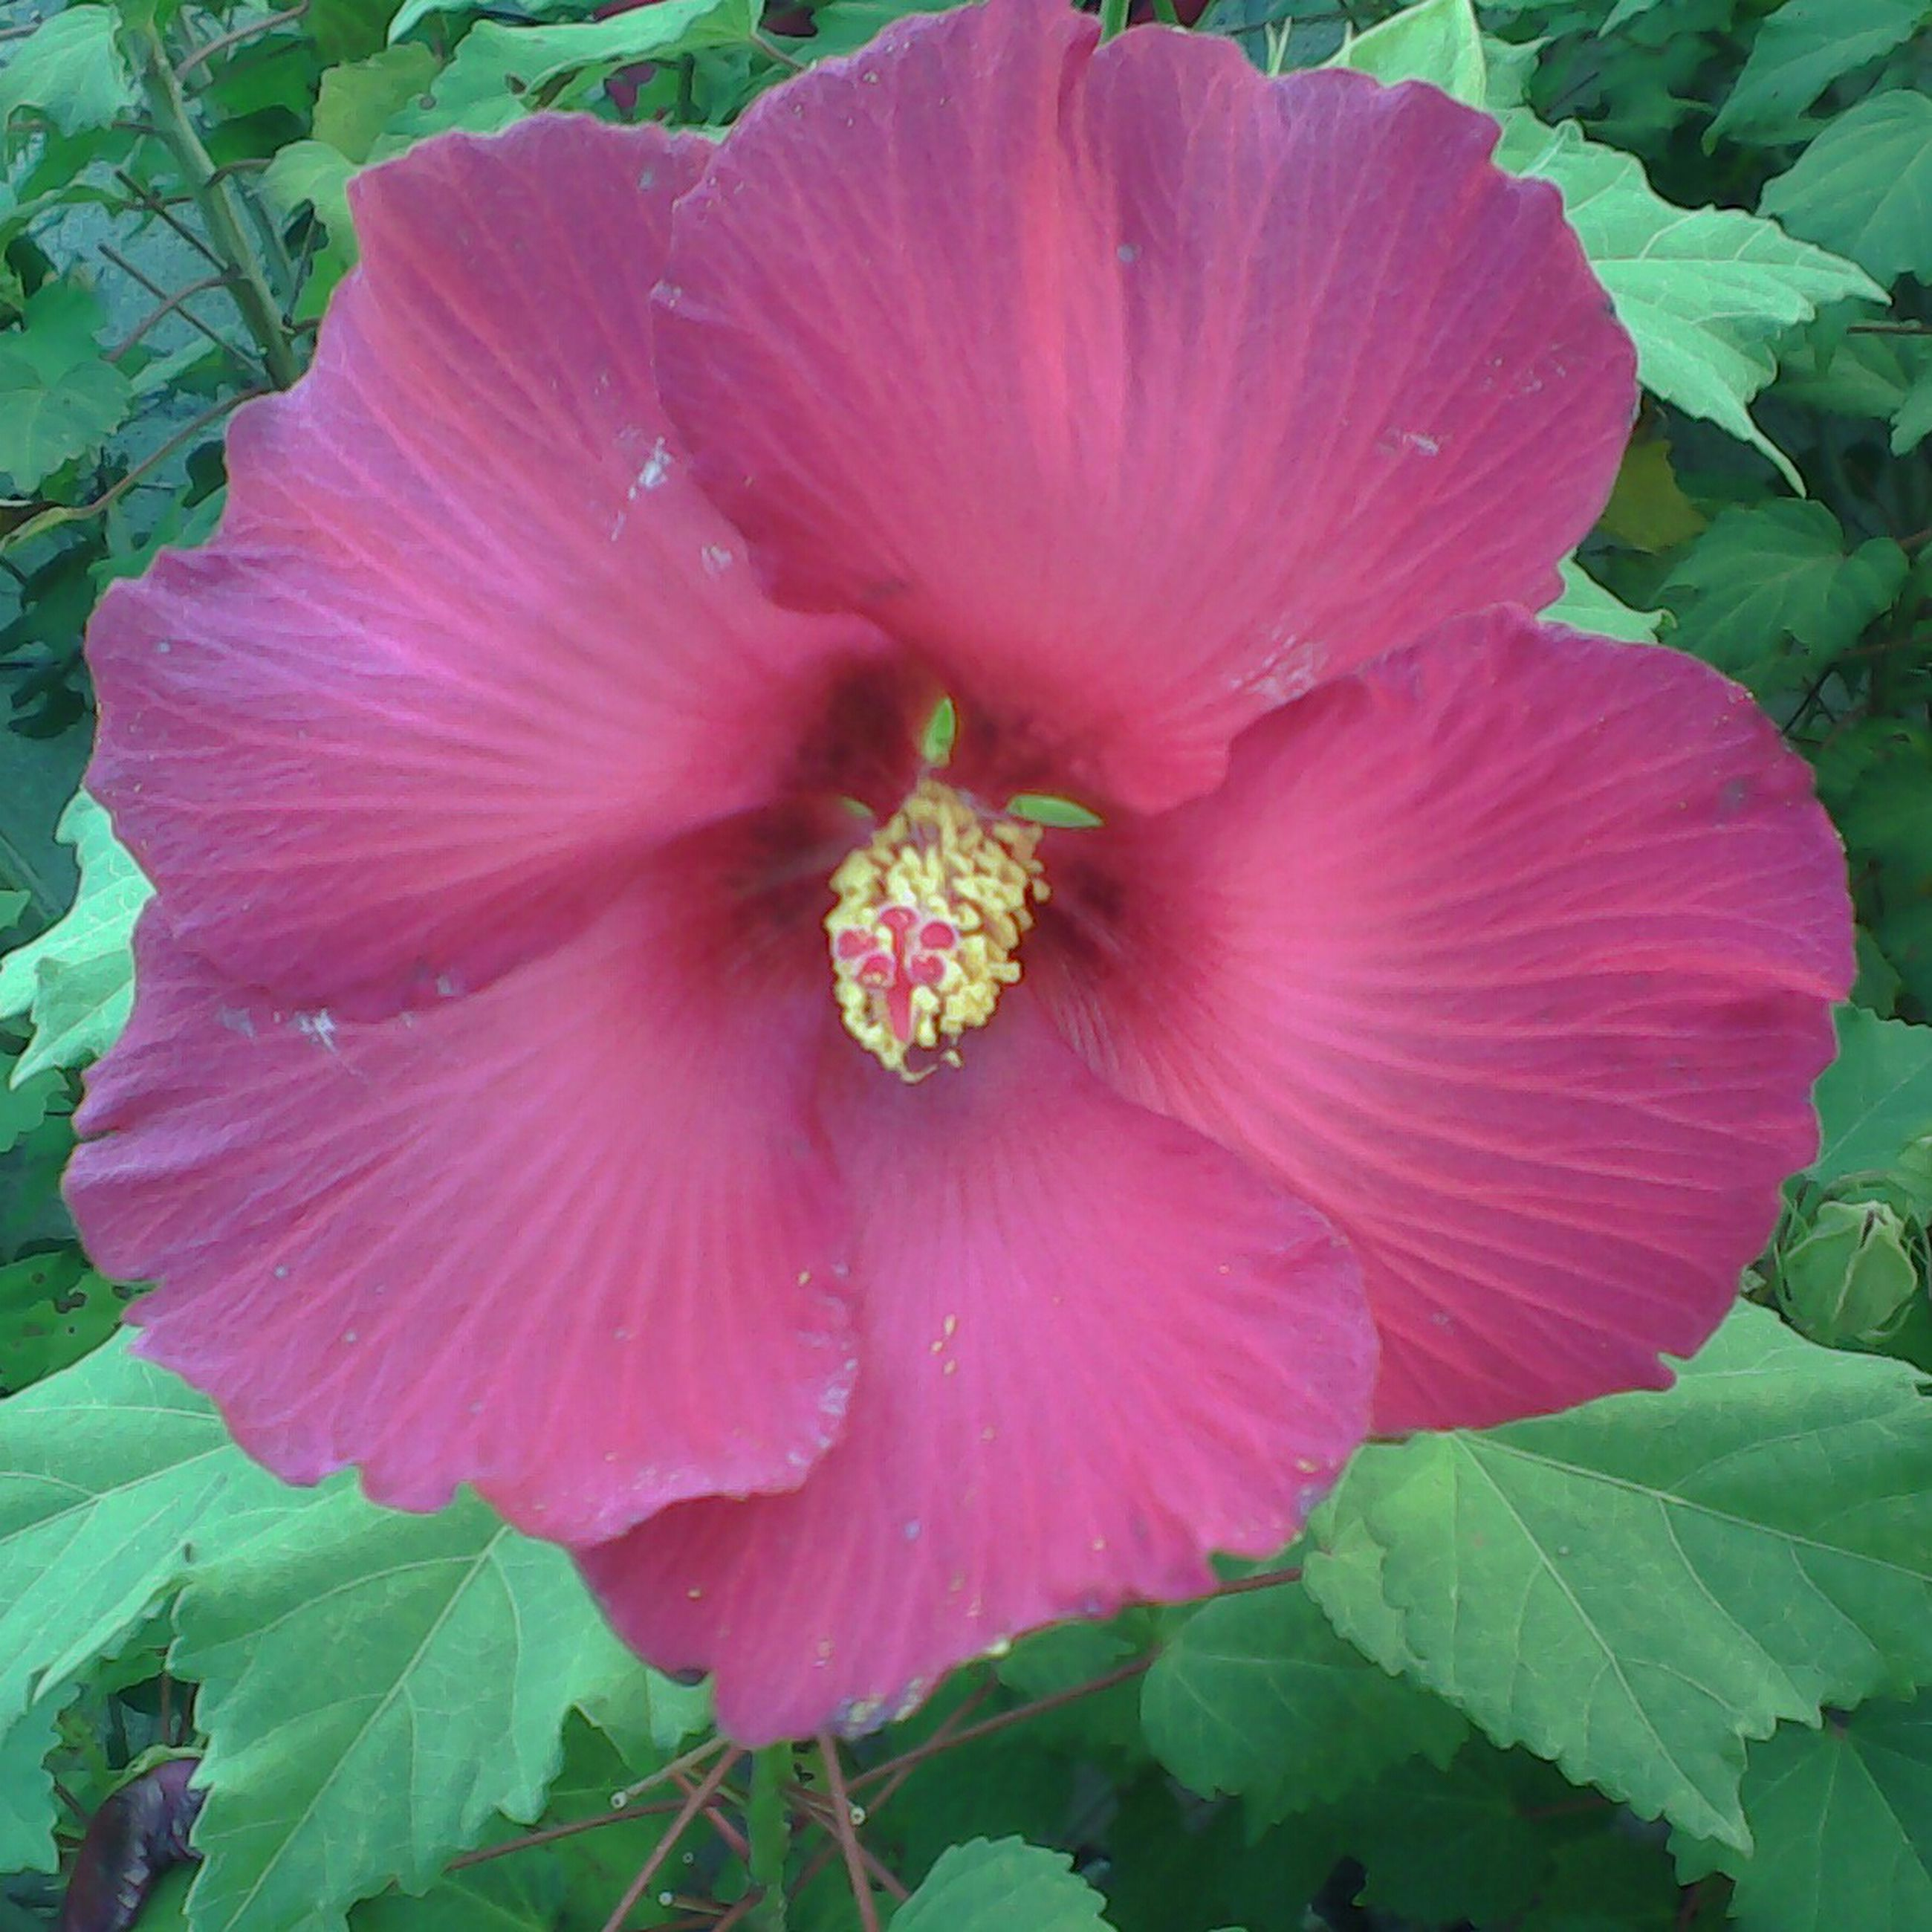 flower, freshness, petal, flower head, growth, fragility, beauty in nature, leaf, single flower, close-up, plant, nature, blooming, pink color, pollen, stamen, hibiscus, in bloom, green color, blossom